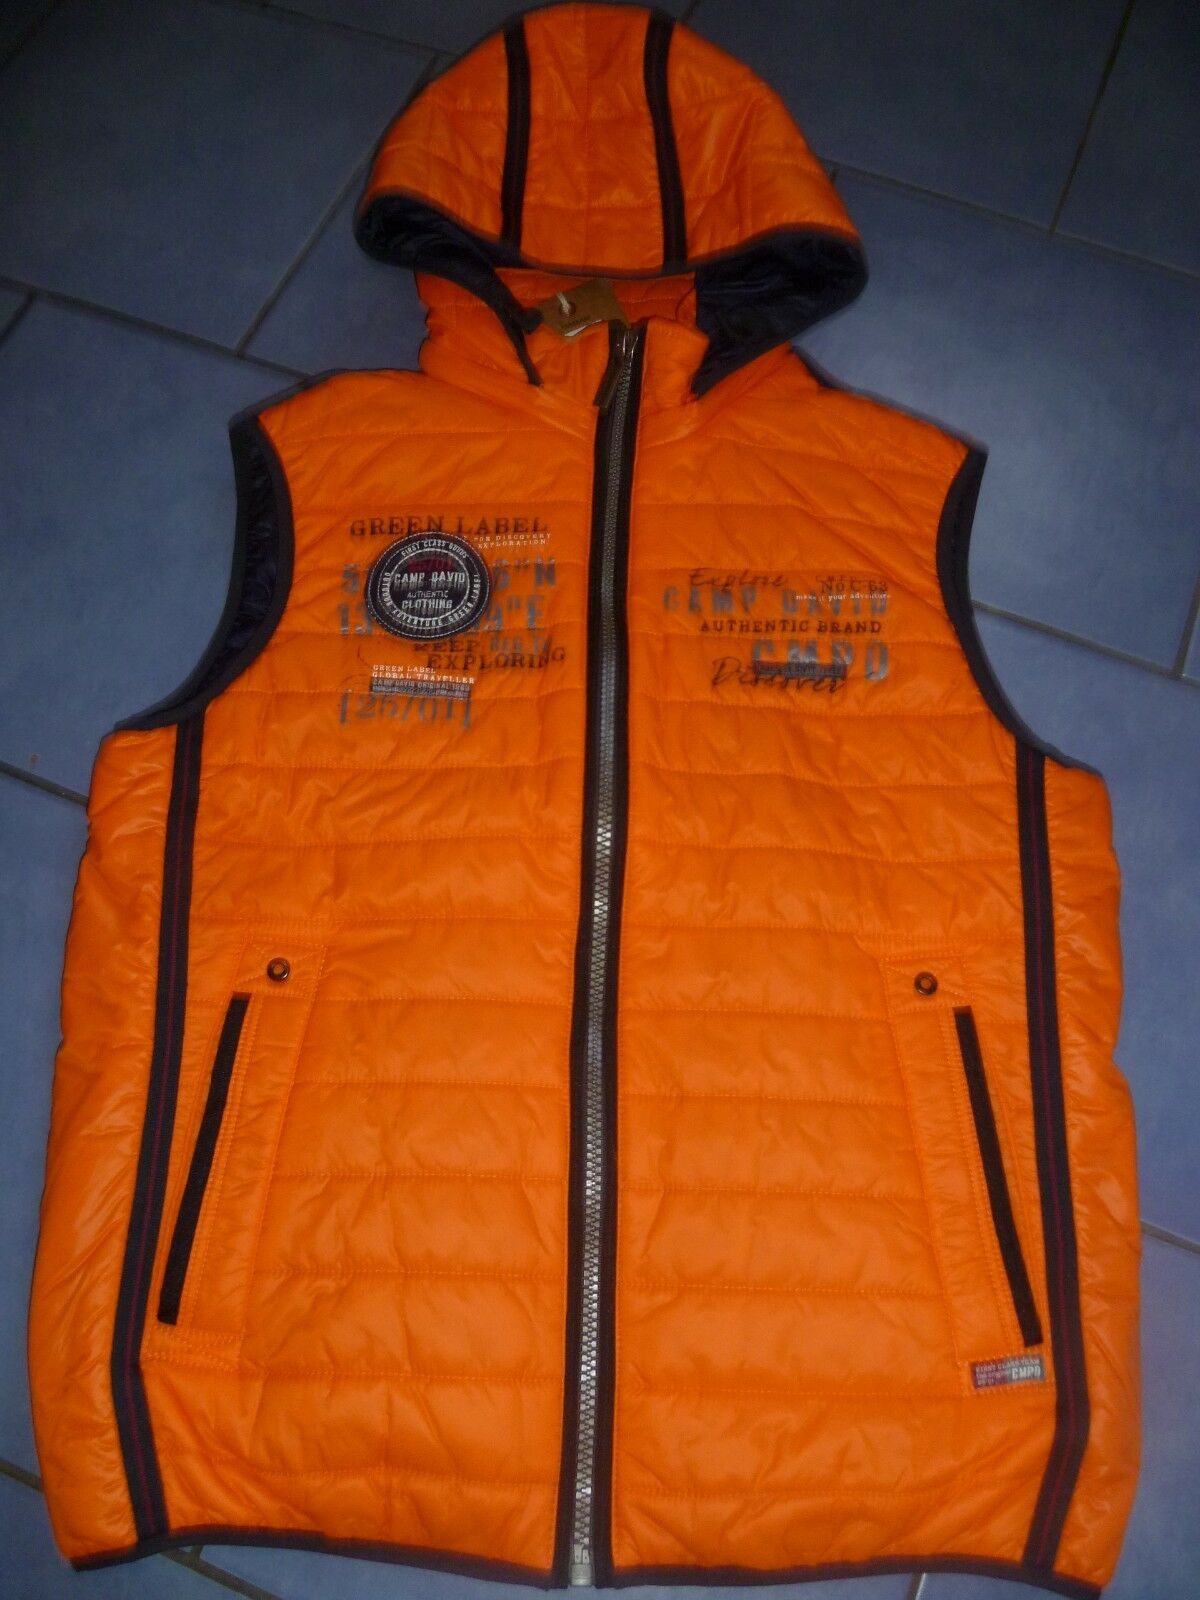 TOP NEU Herren Männer Outdoor Weste Steppweste mit Kapuze Kapuze Kapuze Orange CAMP DAVID Gr.M 428463